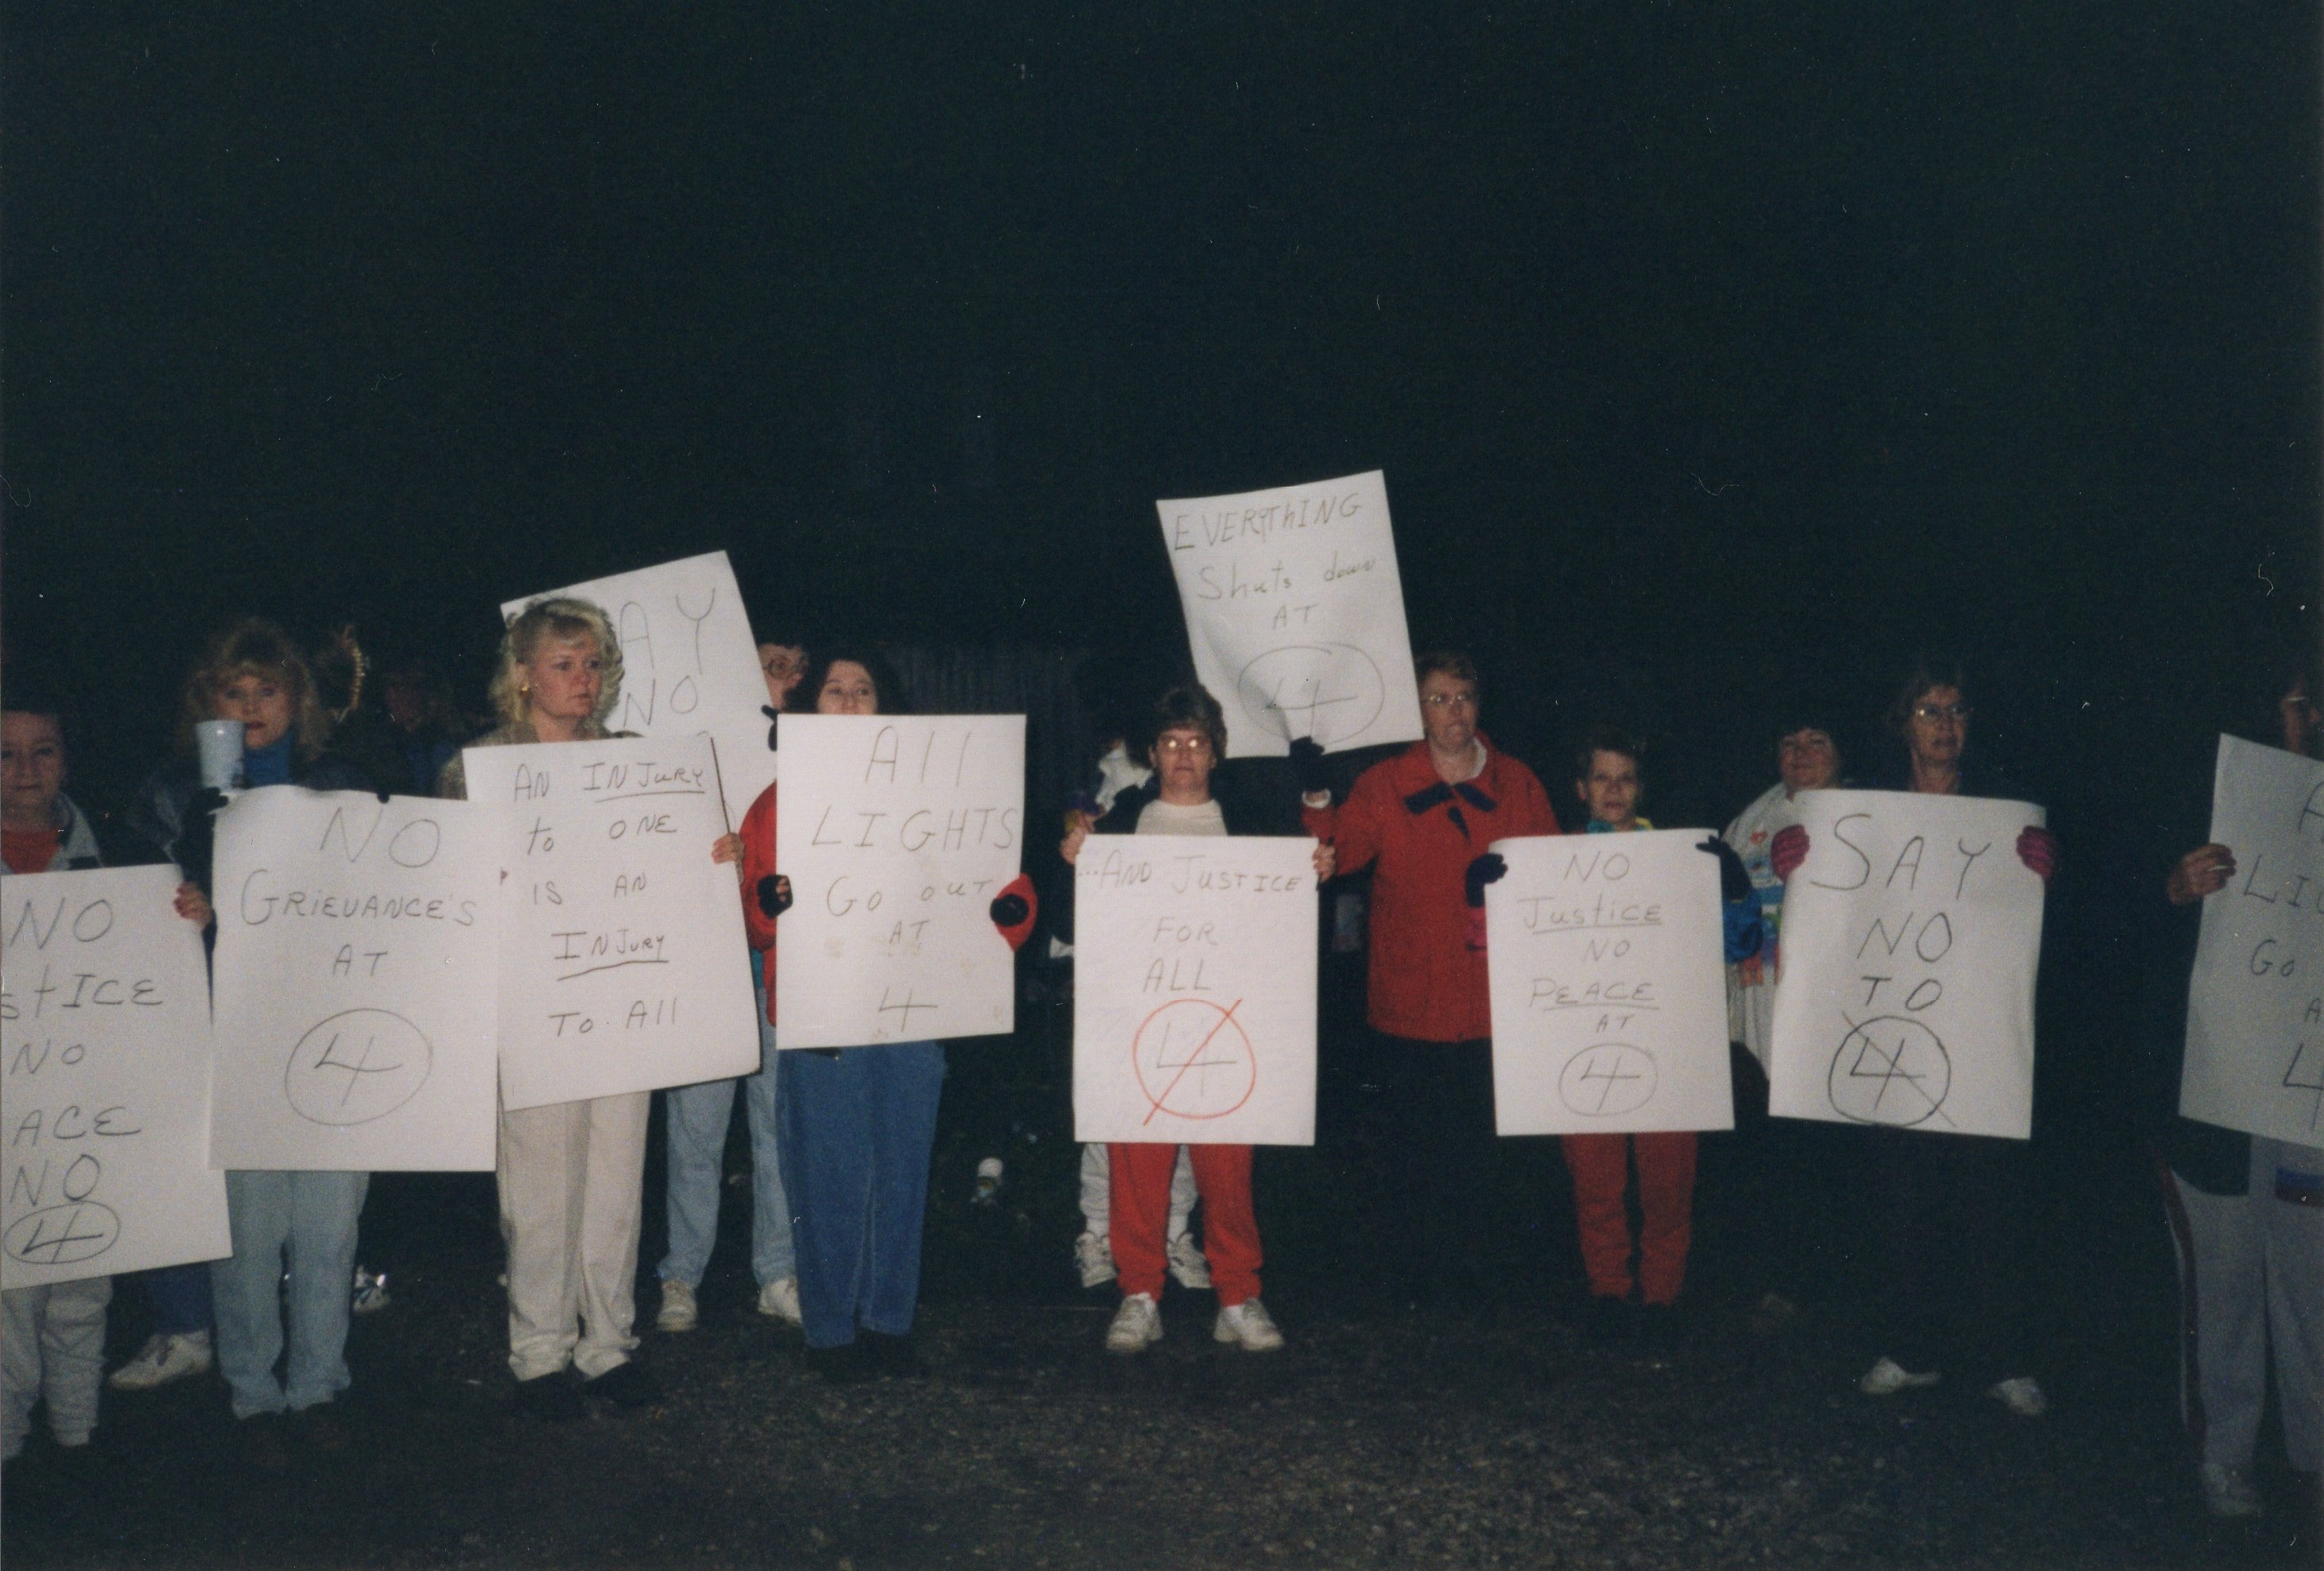 Corbin Ltd. Employees on strike in park across from Vernon St. Factory, Huntington, WV, 1991